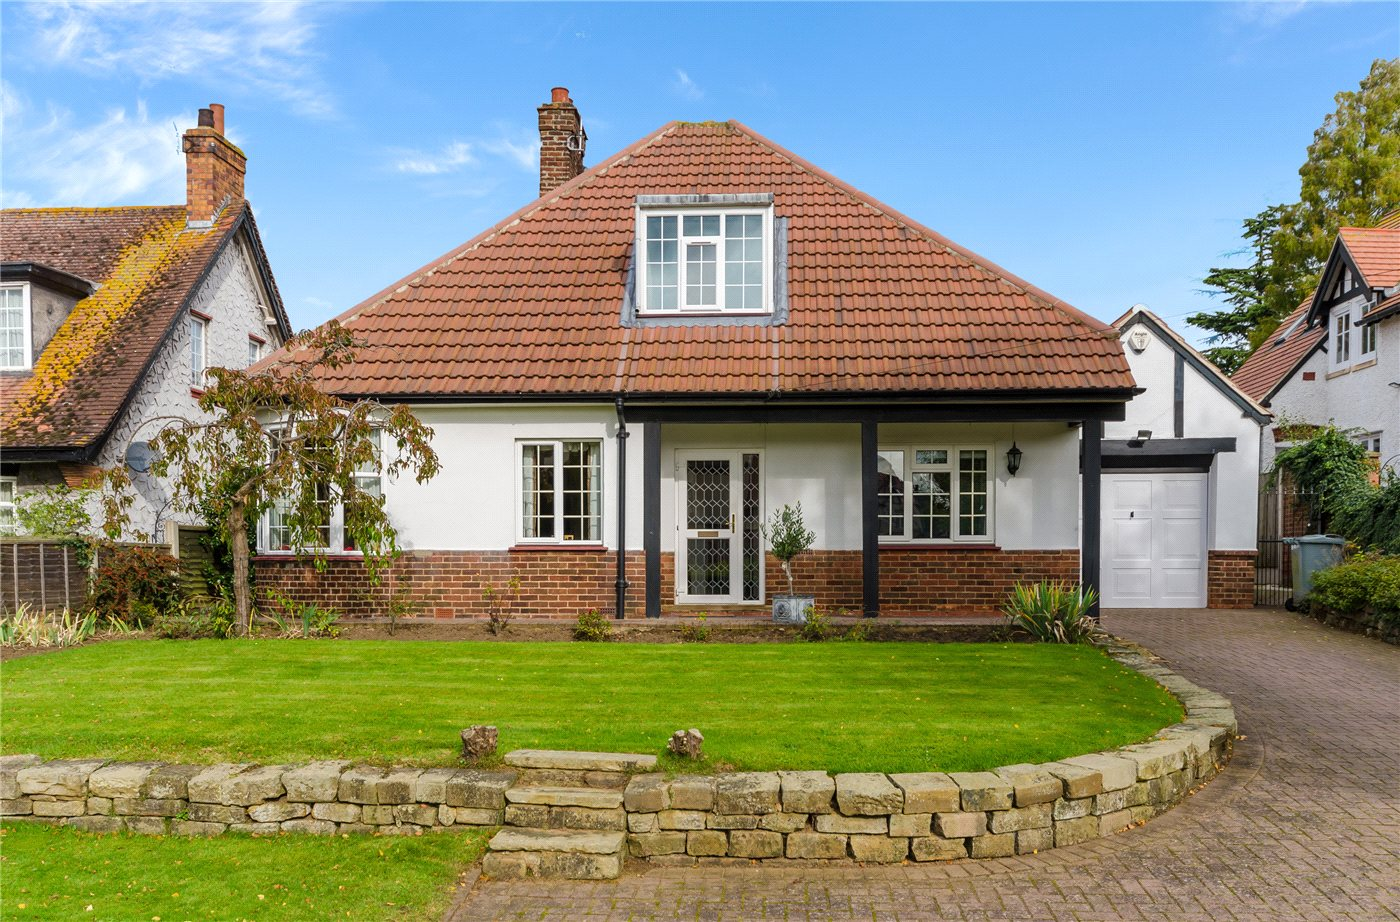 4 Bedrooms Detached Bungalow for sale in Harrowby Lane, Grantham, NG31